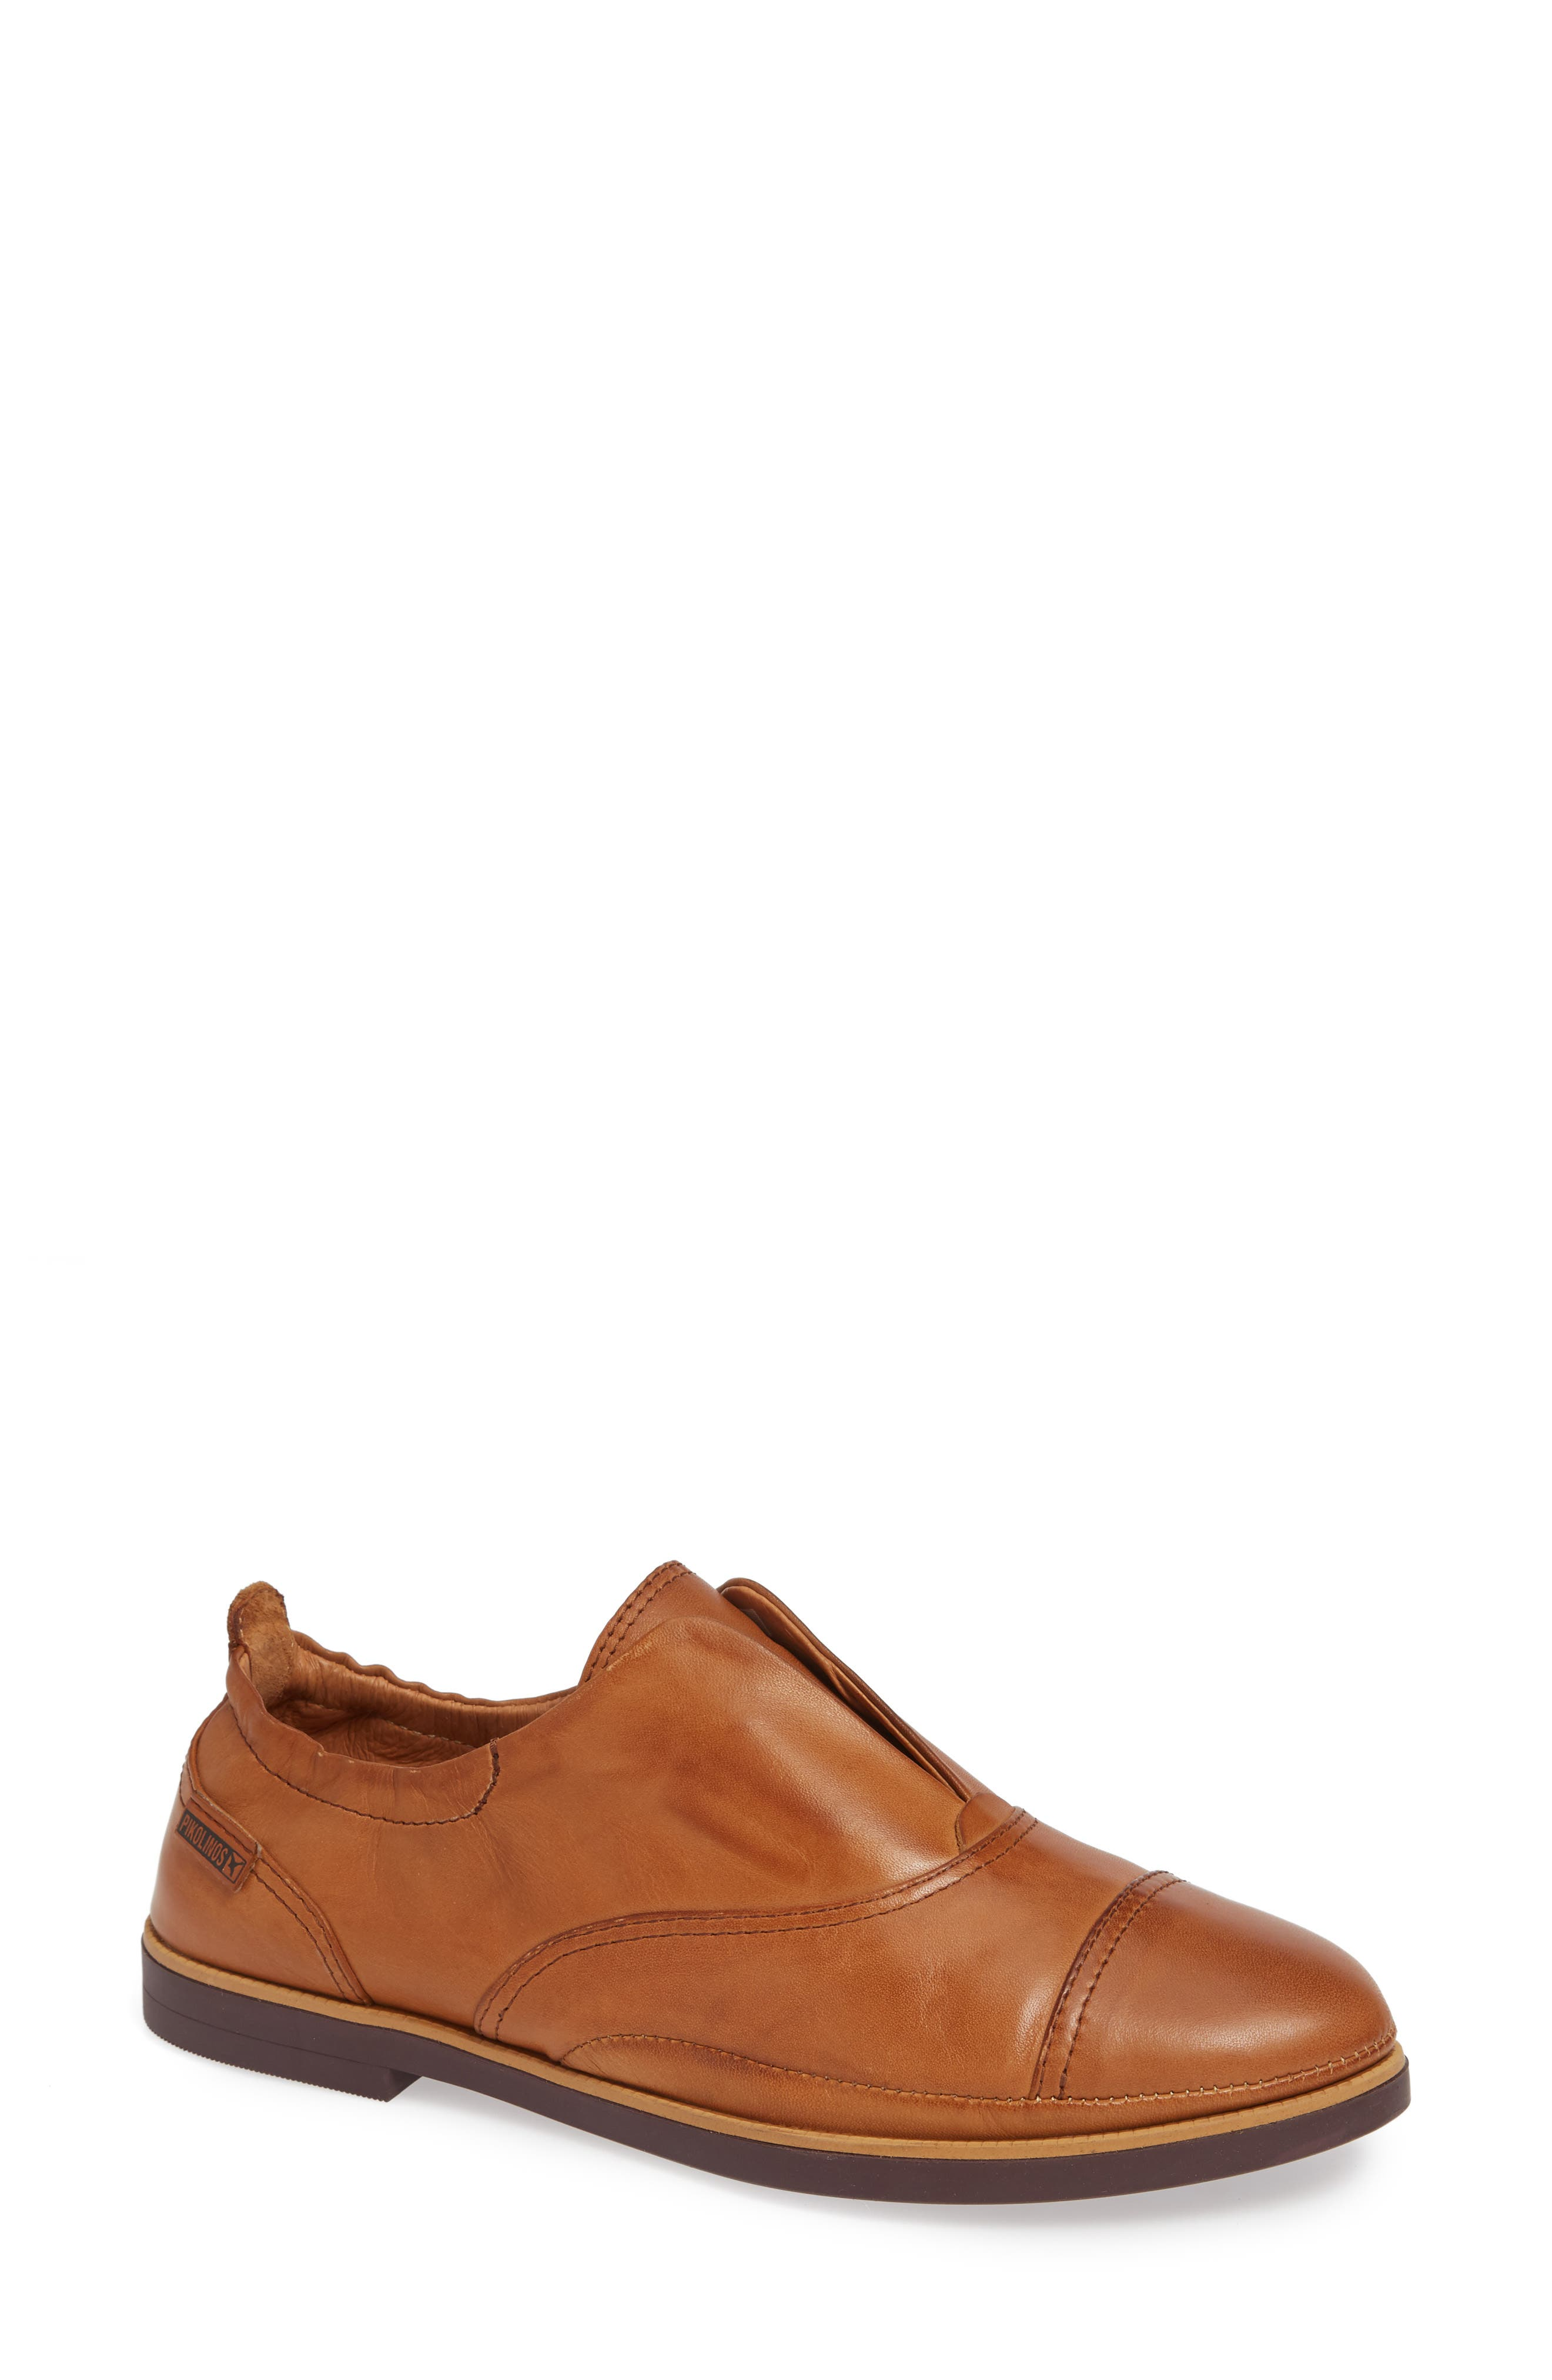 Pikolinos Santorini Colorblock Laceless Oxford, Brown